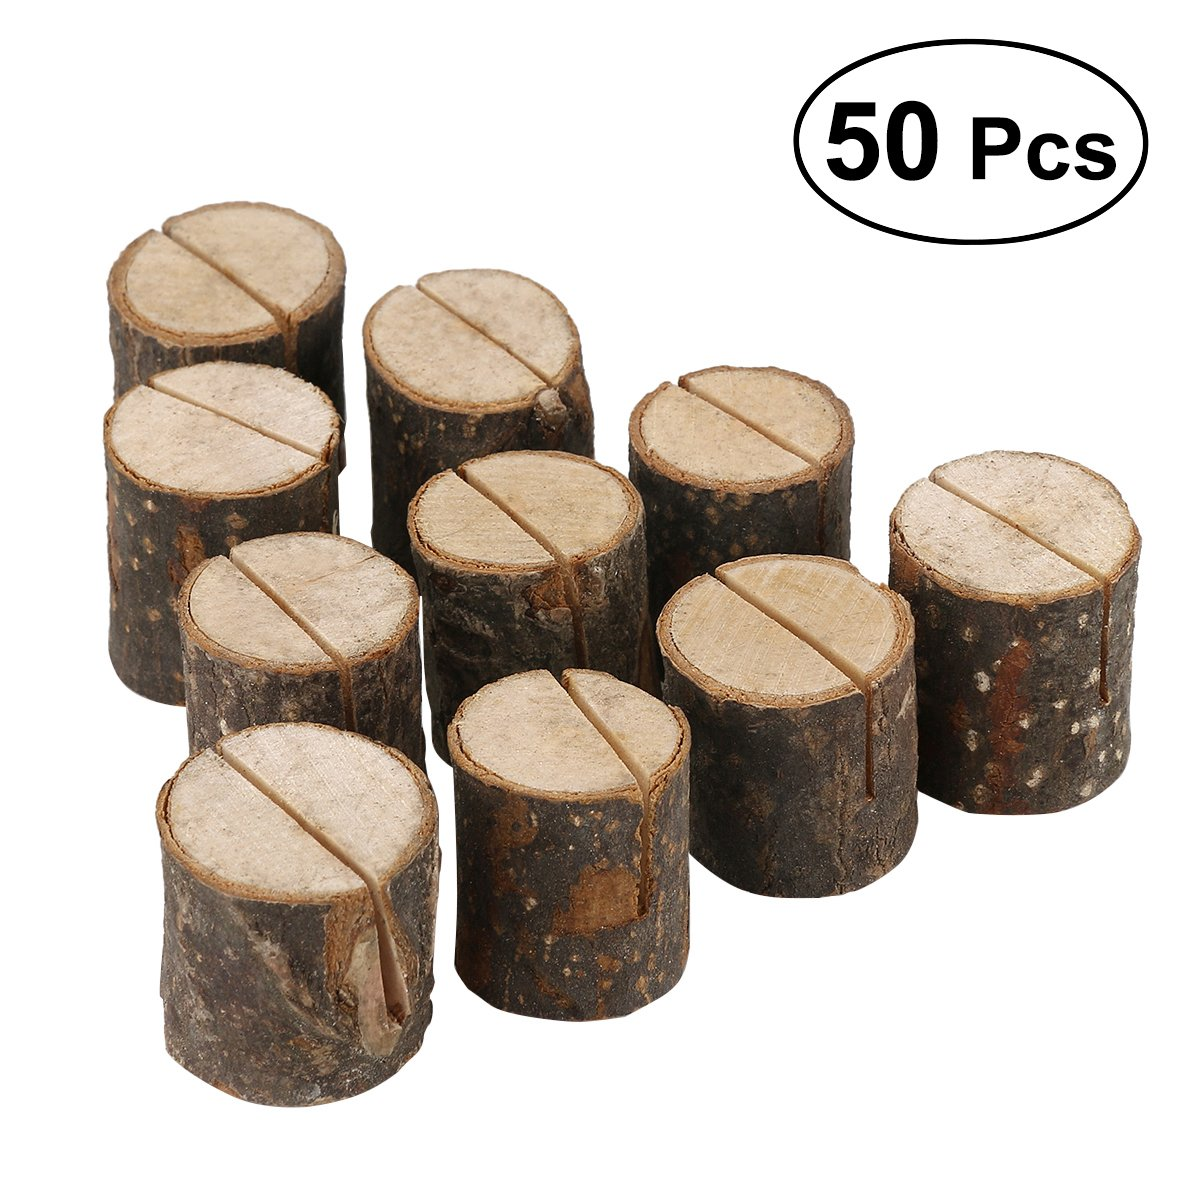 Vosarea 50Pcs Wood Table Numbers Holder Rustic Wood Place Card Holder Wedding Party Table Name Card Holder Memo Note Card Holder